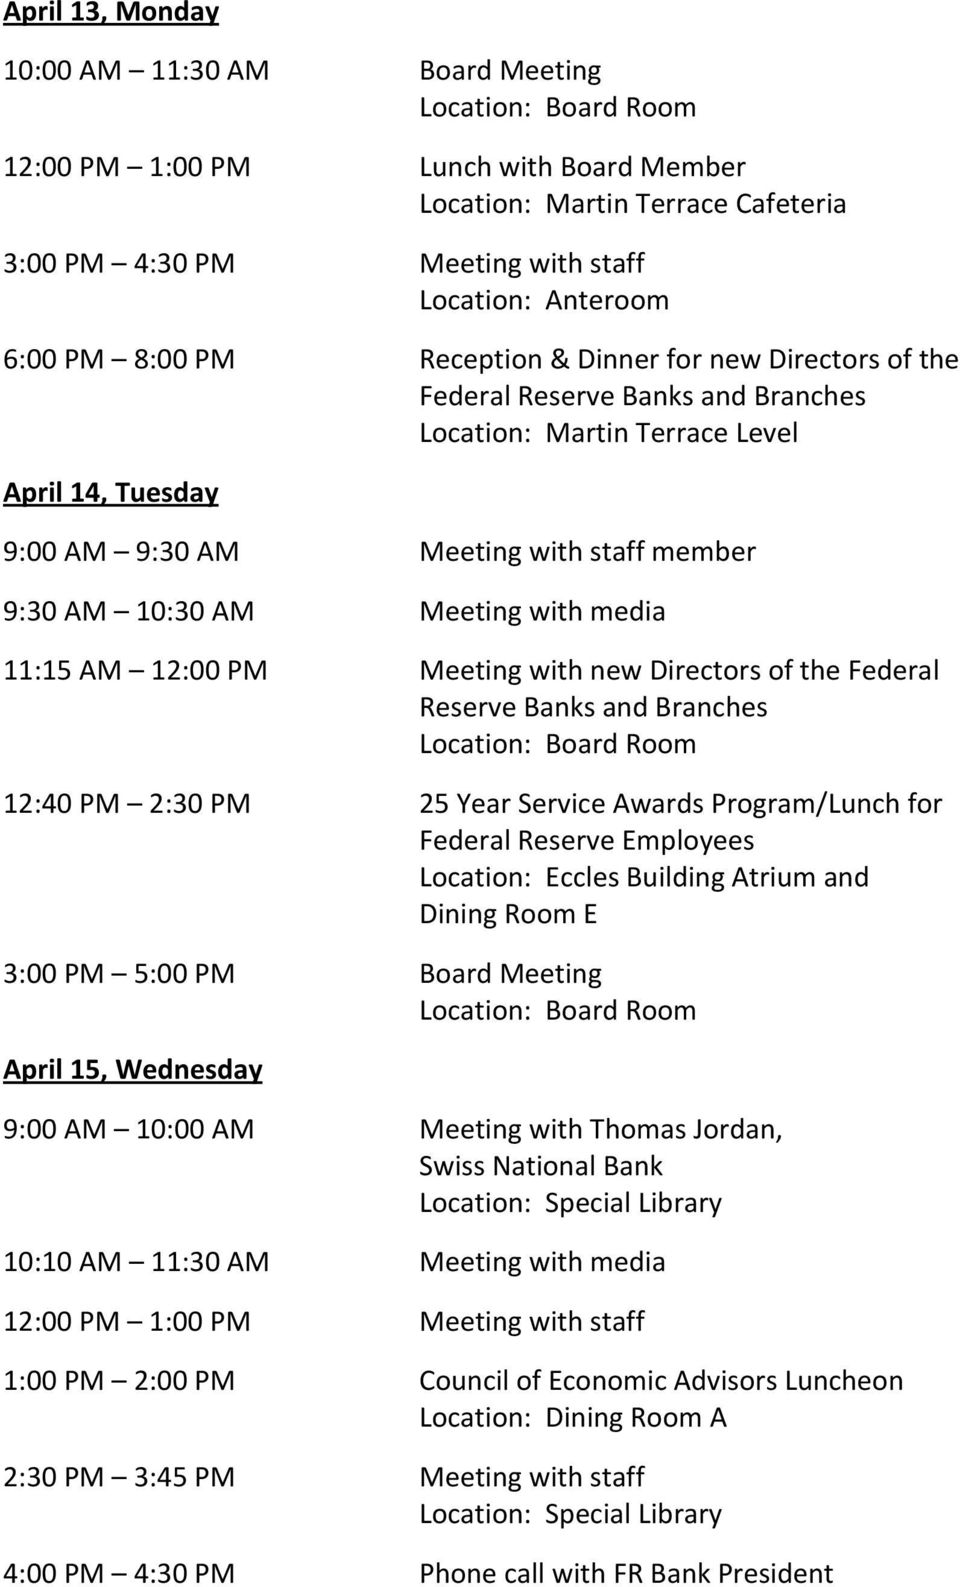 of the Federal Reserve Banks and Branches 12:40 PM 2:30 PM 25 Year Service Awards Program/Lunch for Federal Reserve Employees Location: Eccles Building Atrium and Dining Room E 3:00 PM 5:00 PM Board